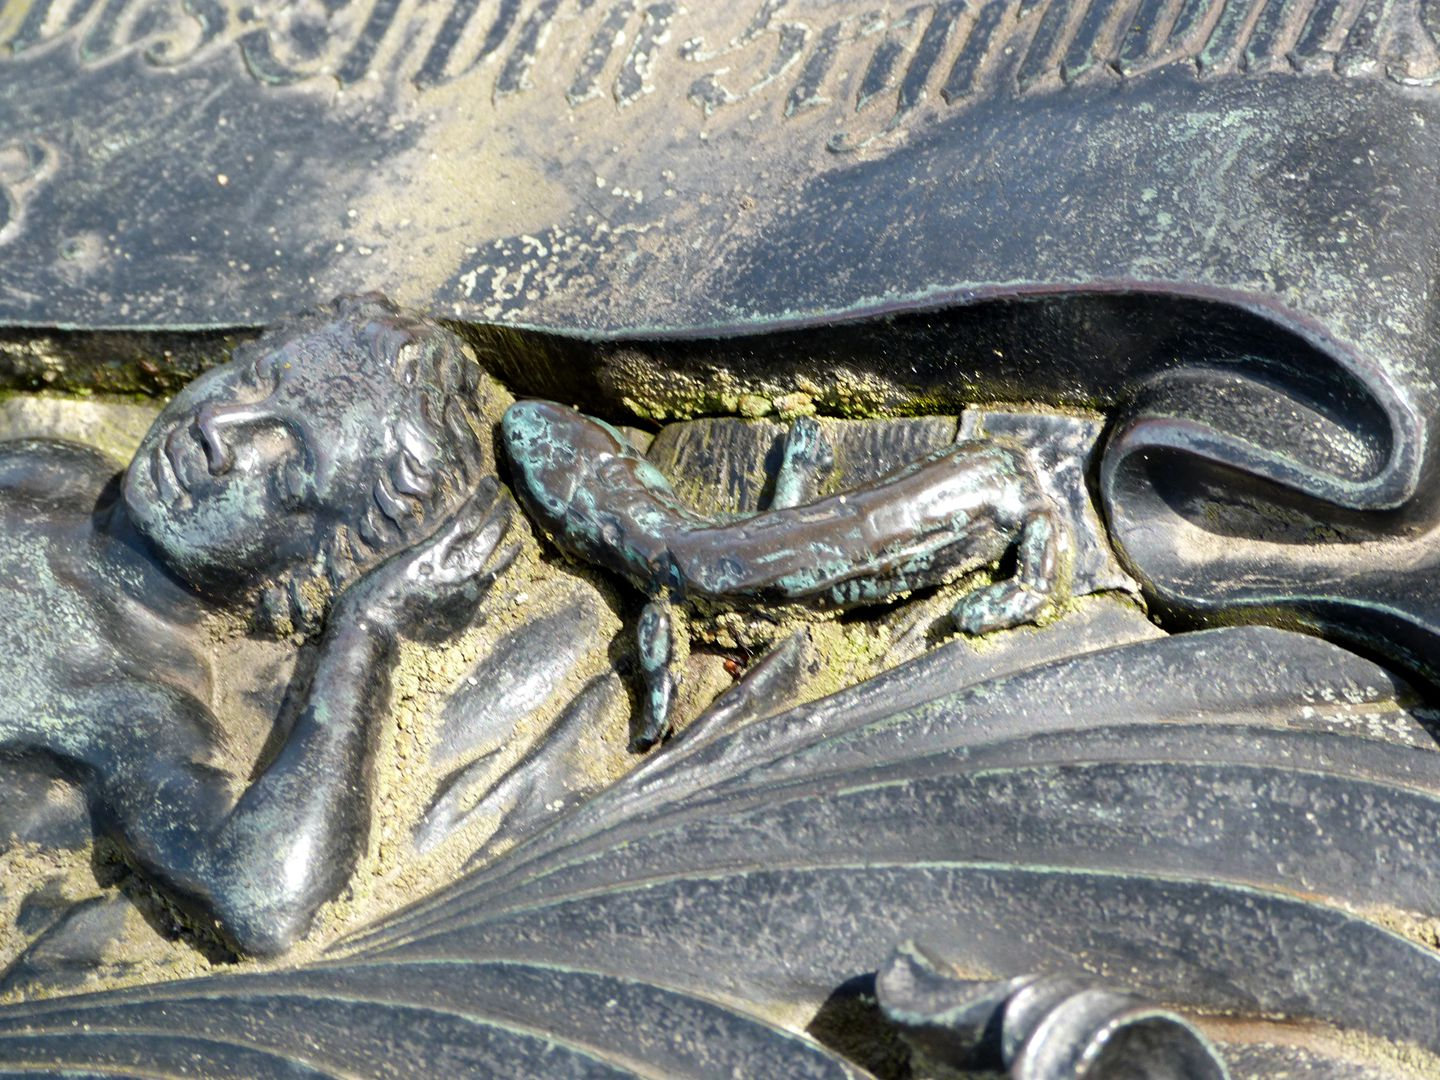 Tomb of Georg Wolff Pantzer and his spouse Anna Maria Elisabetha Ruland Detail with lizard